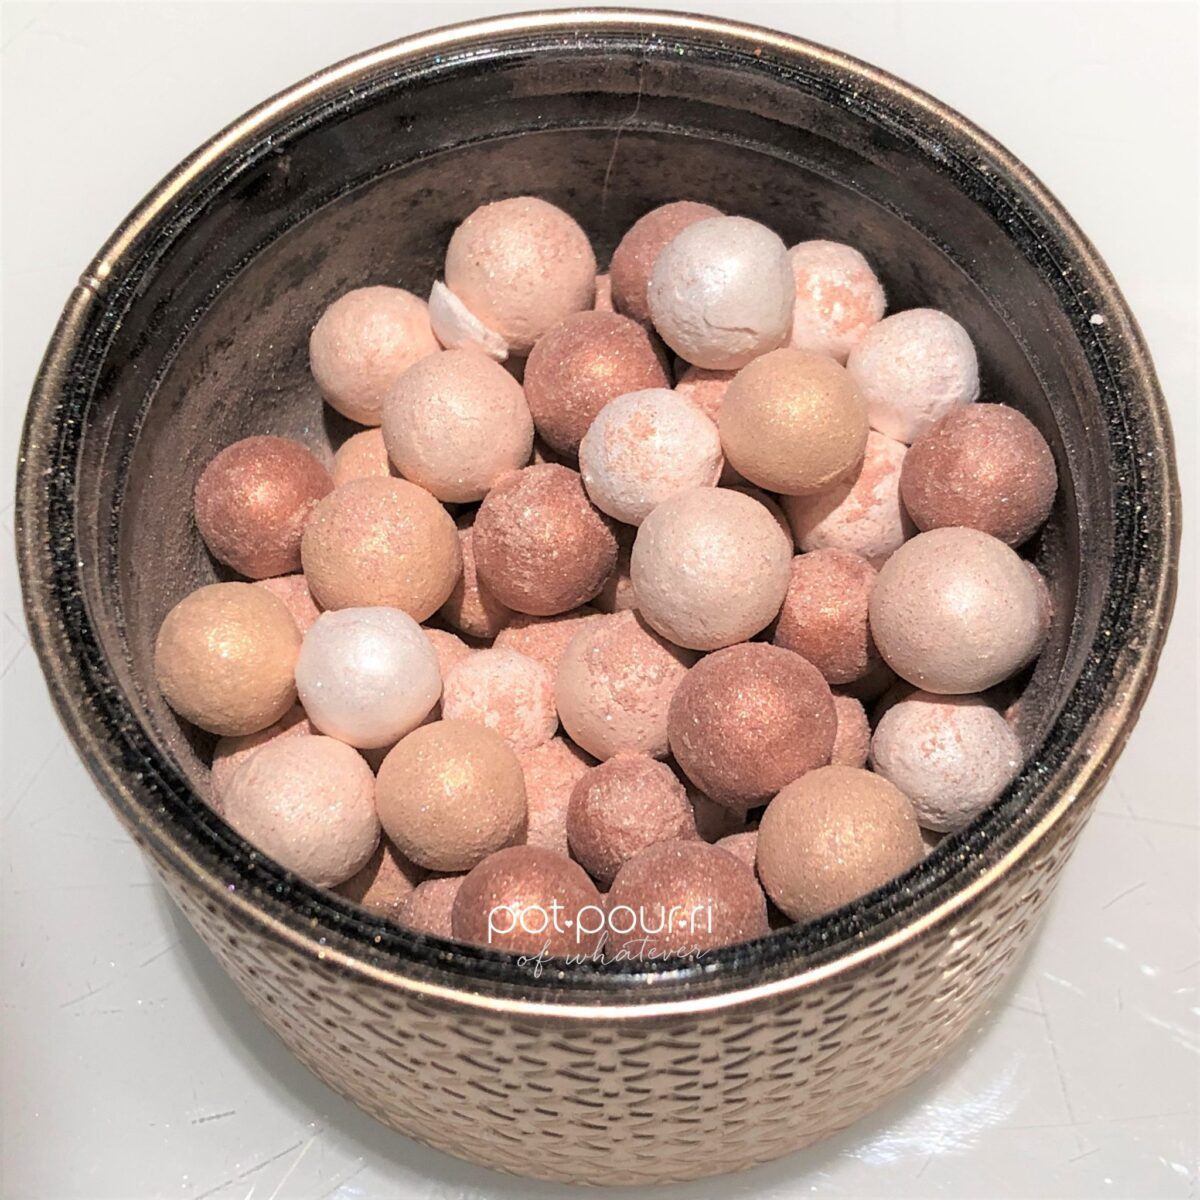 GUERLAIN METEORITES ELECTRIC PEARLS FOUR DIFFERENT COLORED PEARLS